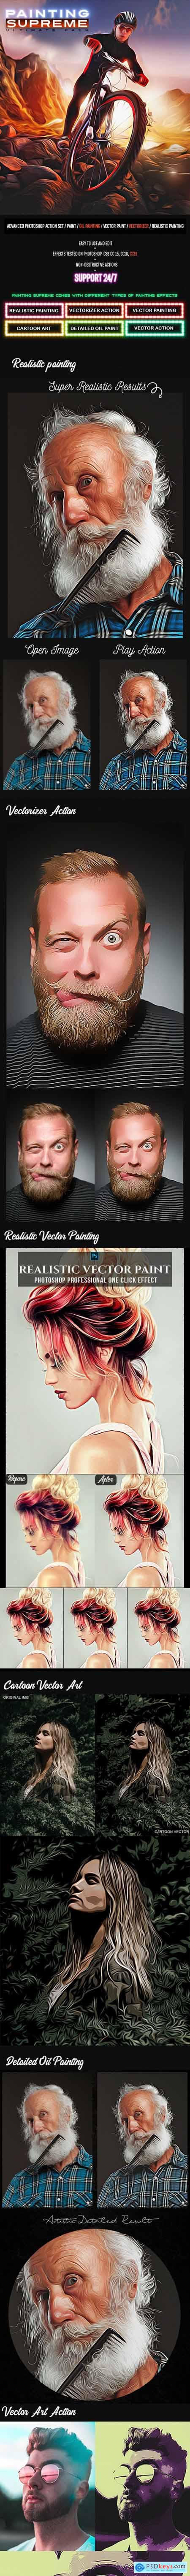 Supreme Painting Photoshop Actions 24884912